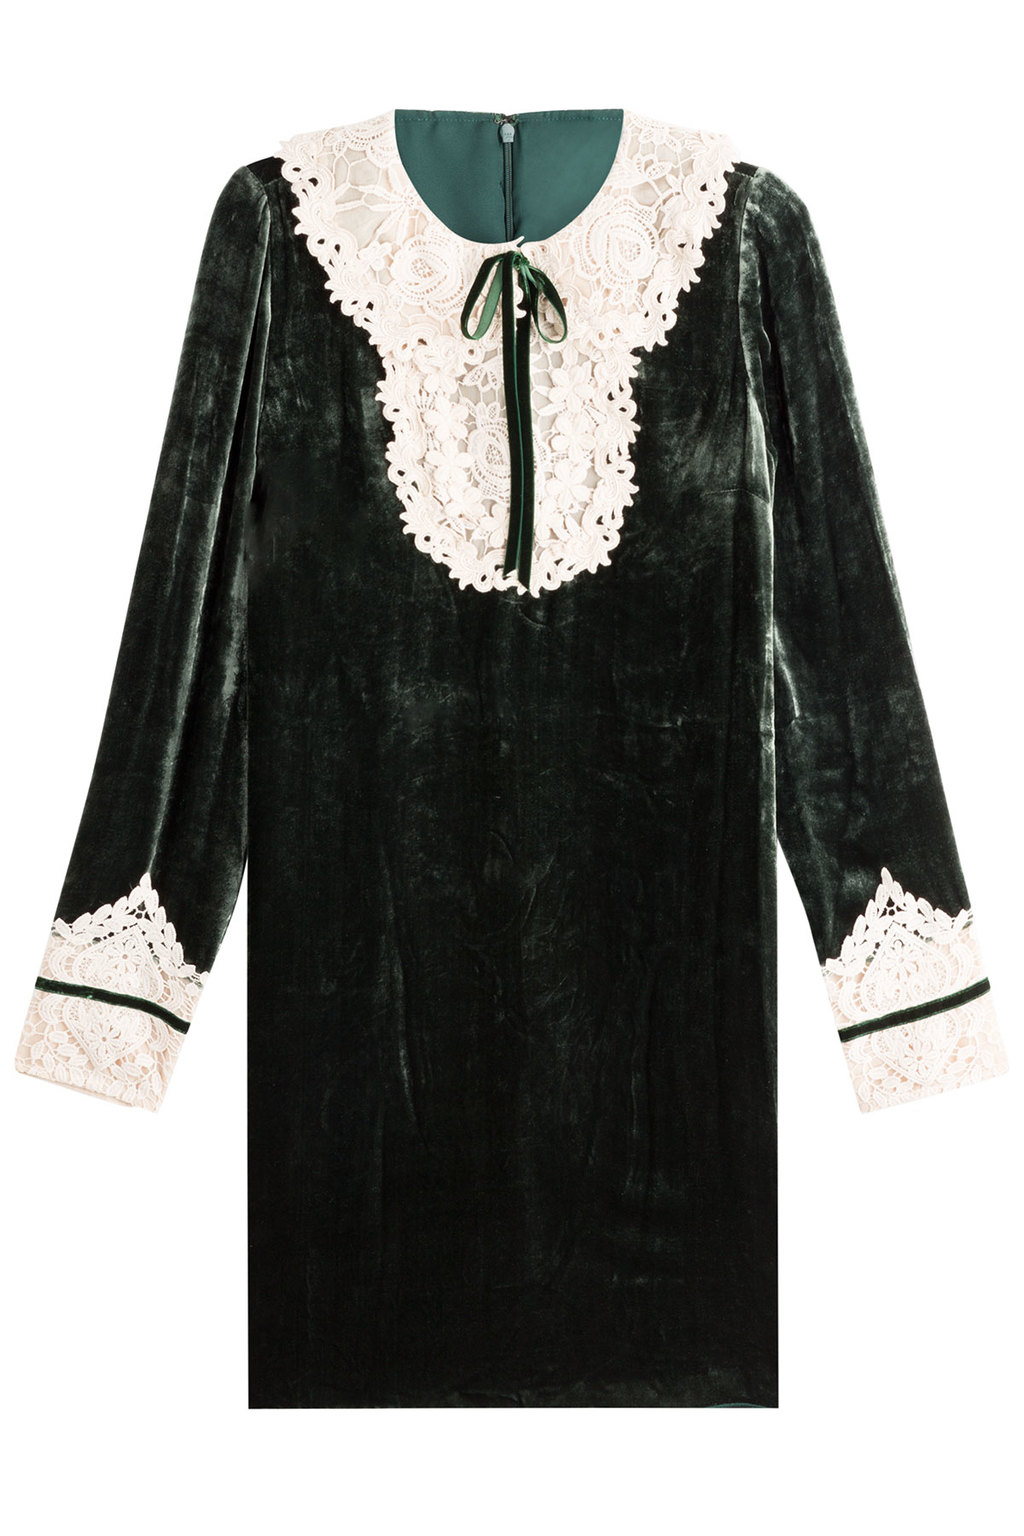 Velvet Dress With Lace Green - style: smock; fit: loose; pattern: plain; neckline: pussy bow; secondary colour: ivory/cream; predominant colour: dark green; occasions: evening; length: just above the knee; sleeve length: long sleeve; sleeve style: standard; pattern type: fabric; texture group: velvet/fabrics with pile; fibres: viscose/rayon - mix; embellishment: lace; season: a/w 2016; wardrobe: event